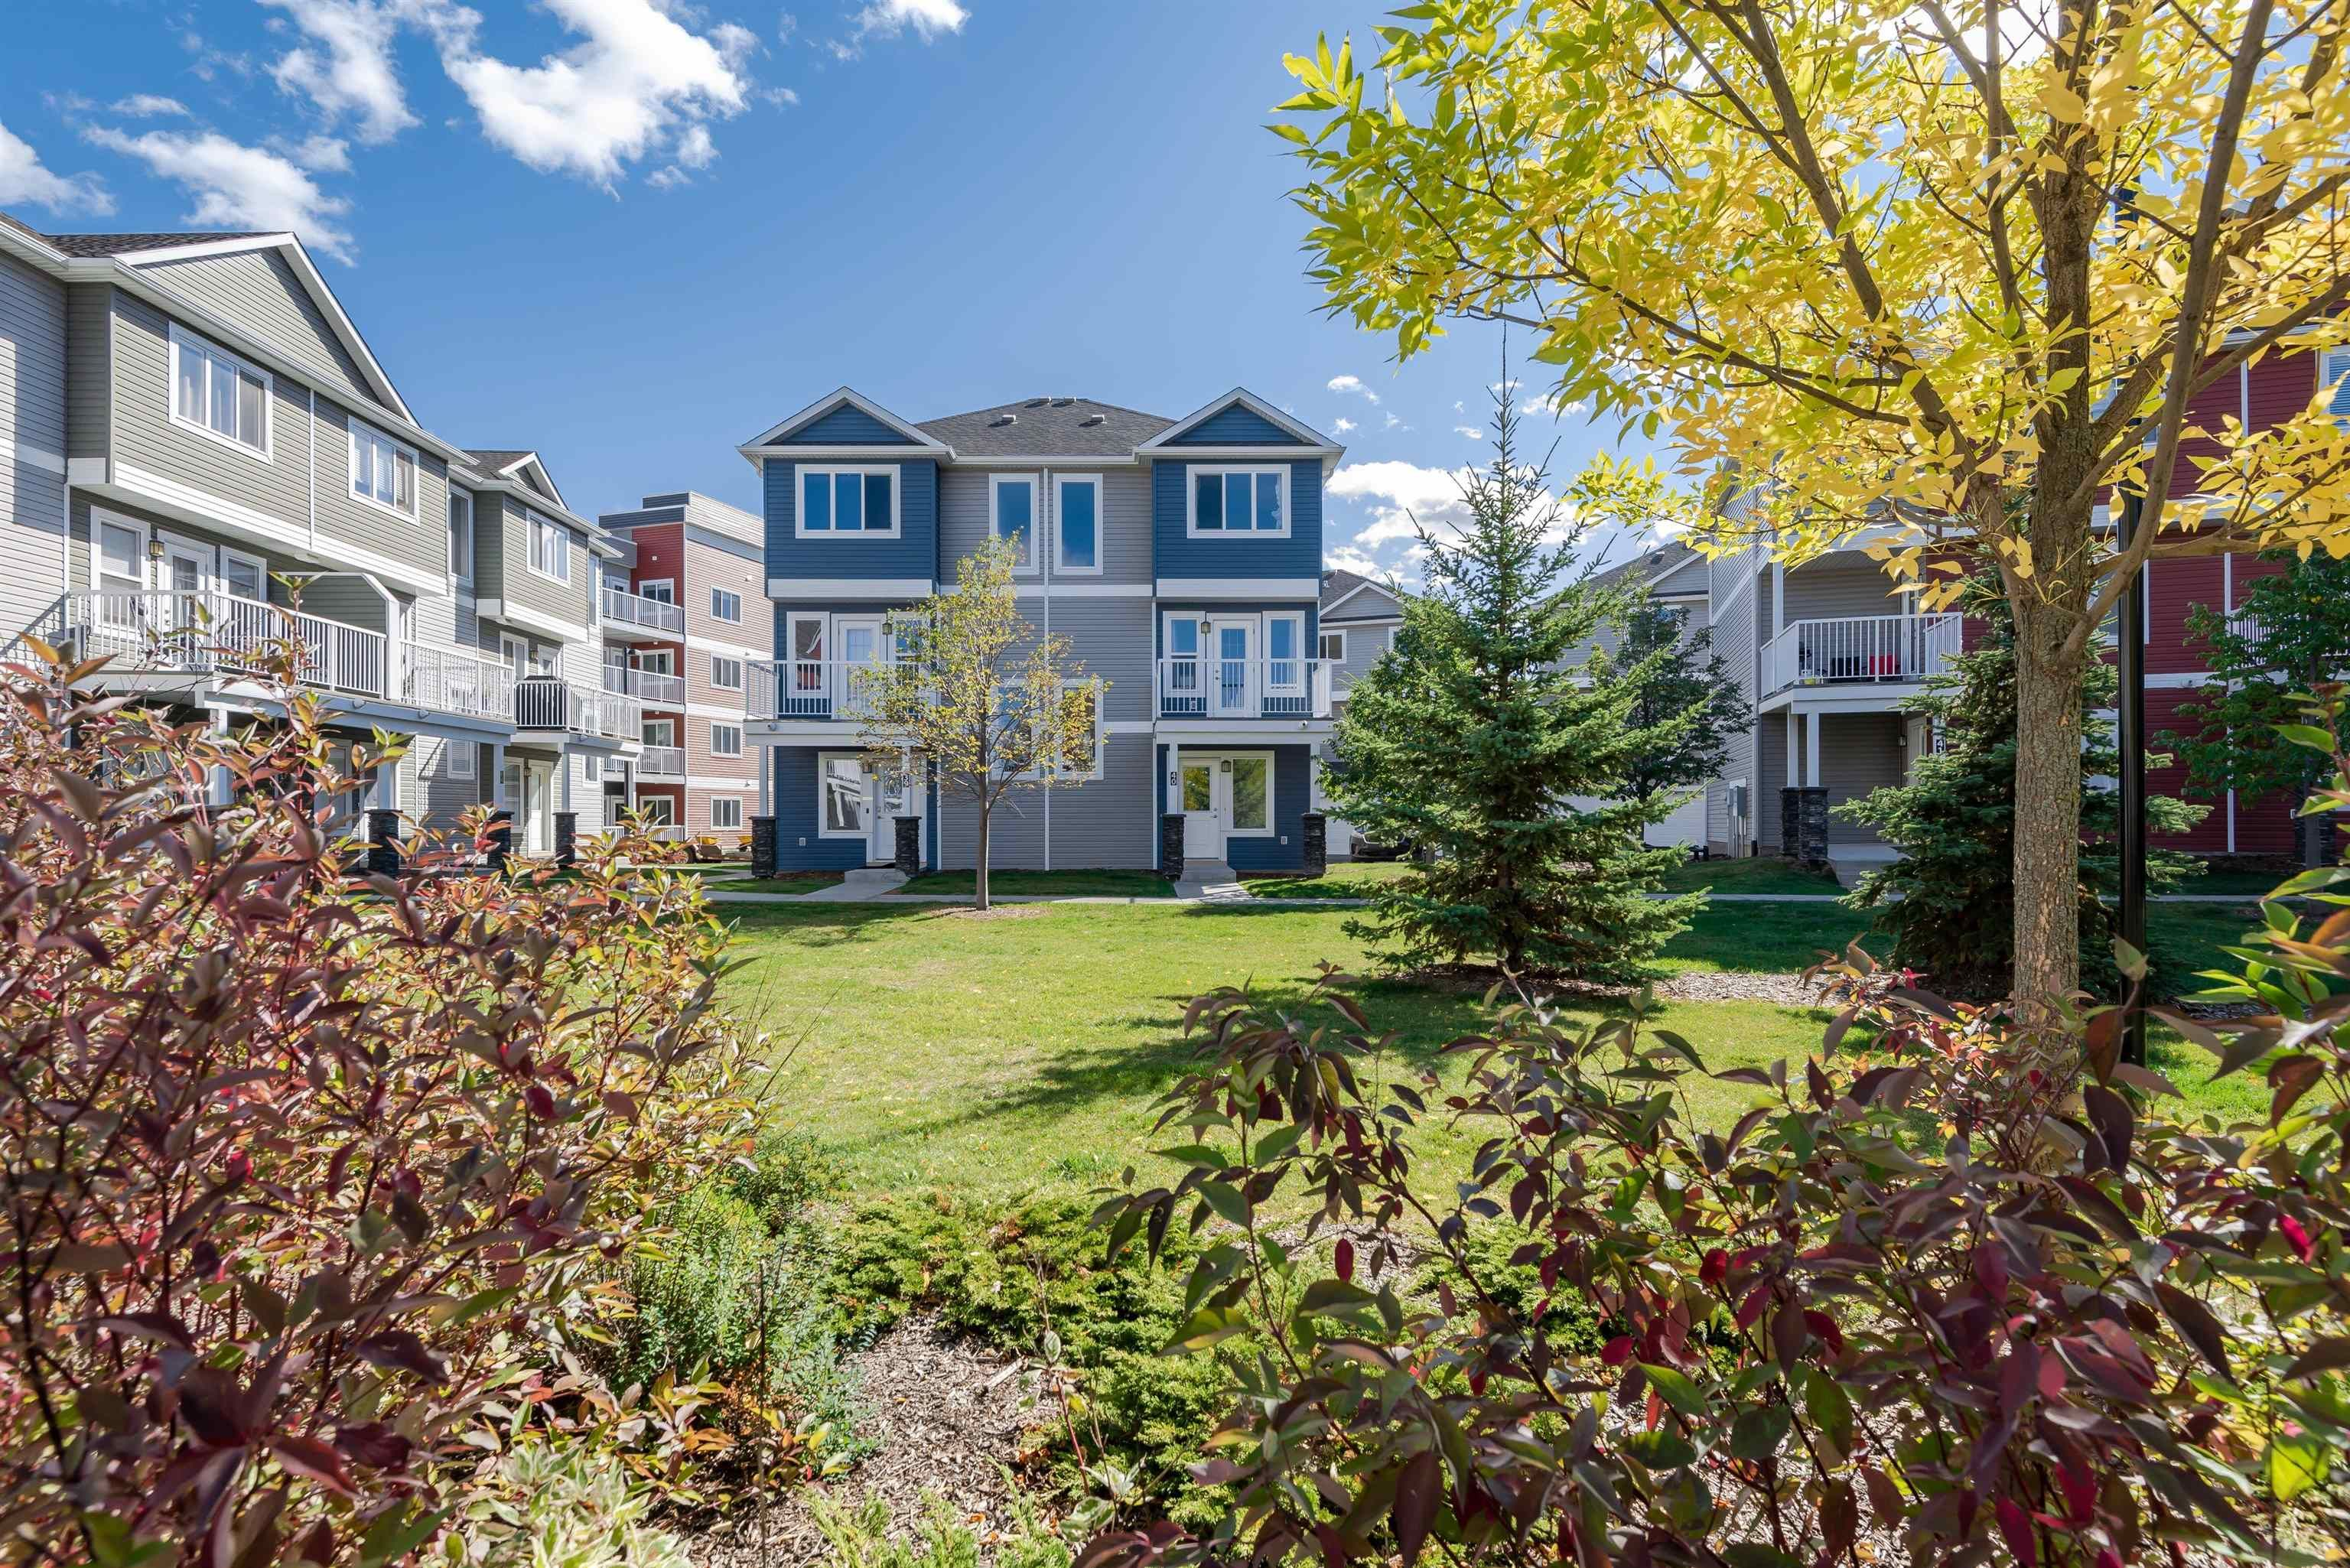 Main Photo: 40 1816 RUTHERFORD Road in Edmonton: Zone 55 Townhouse for sale : MLS®# E4264651